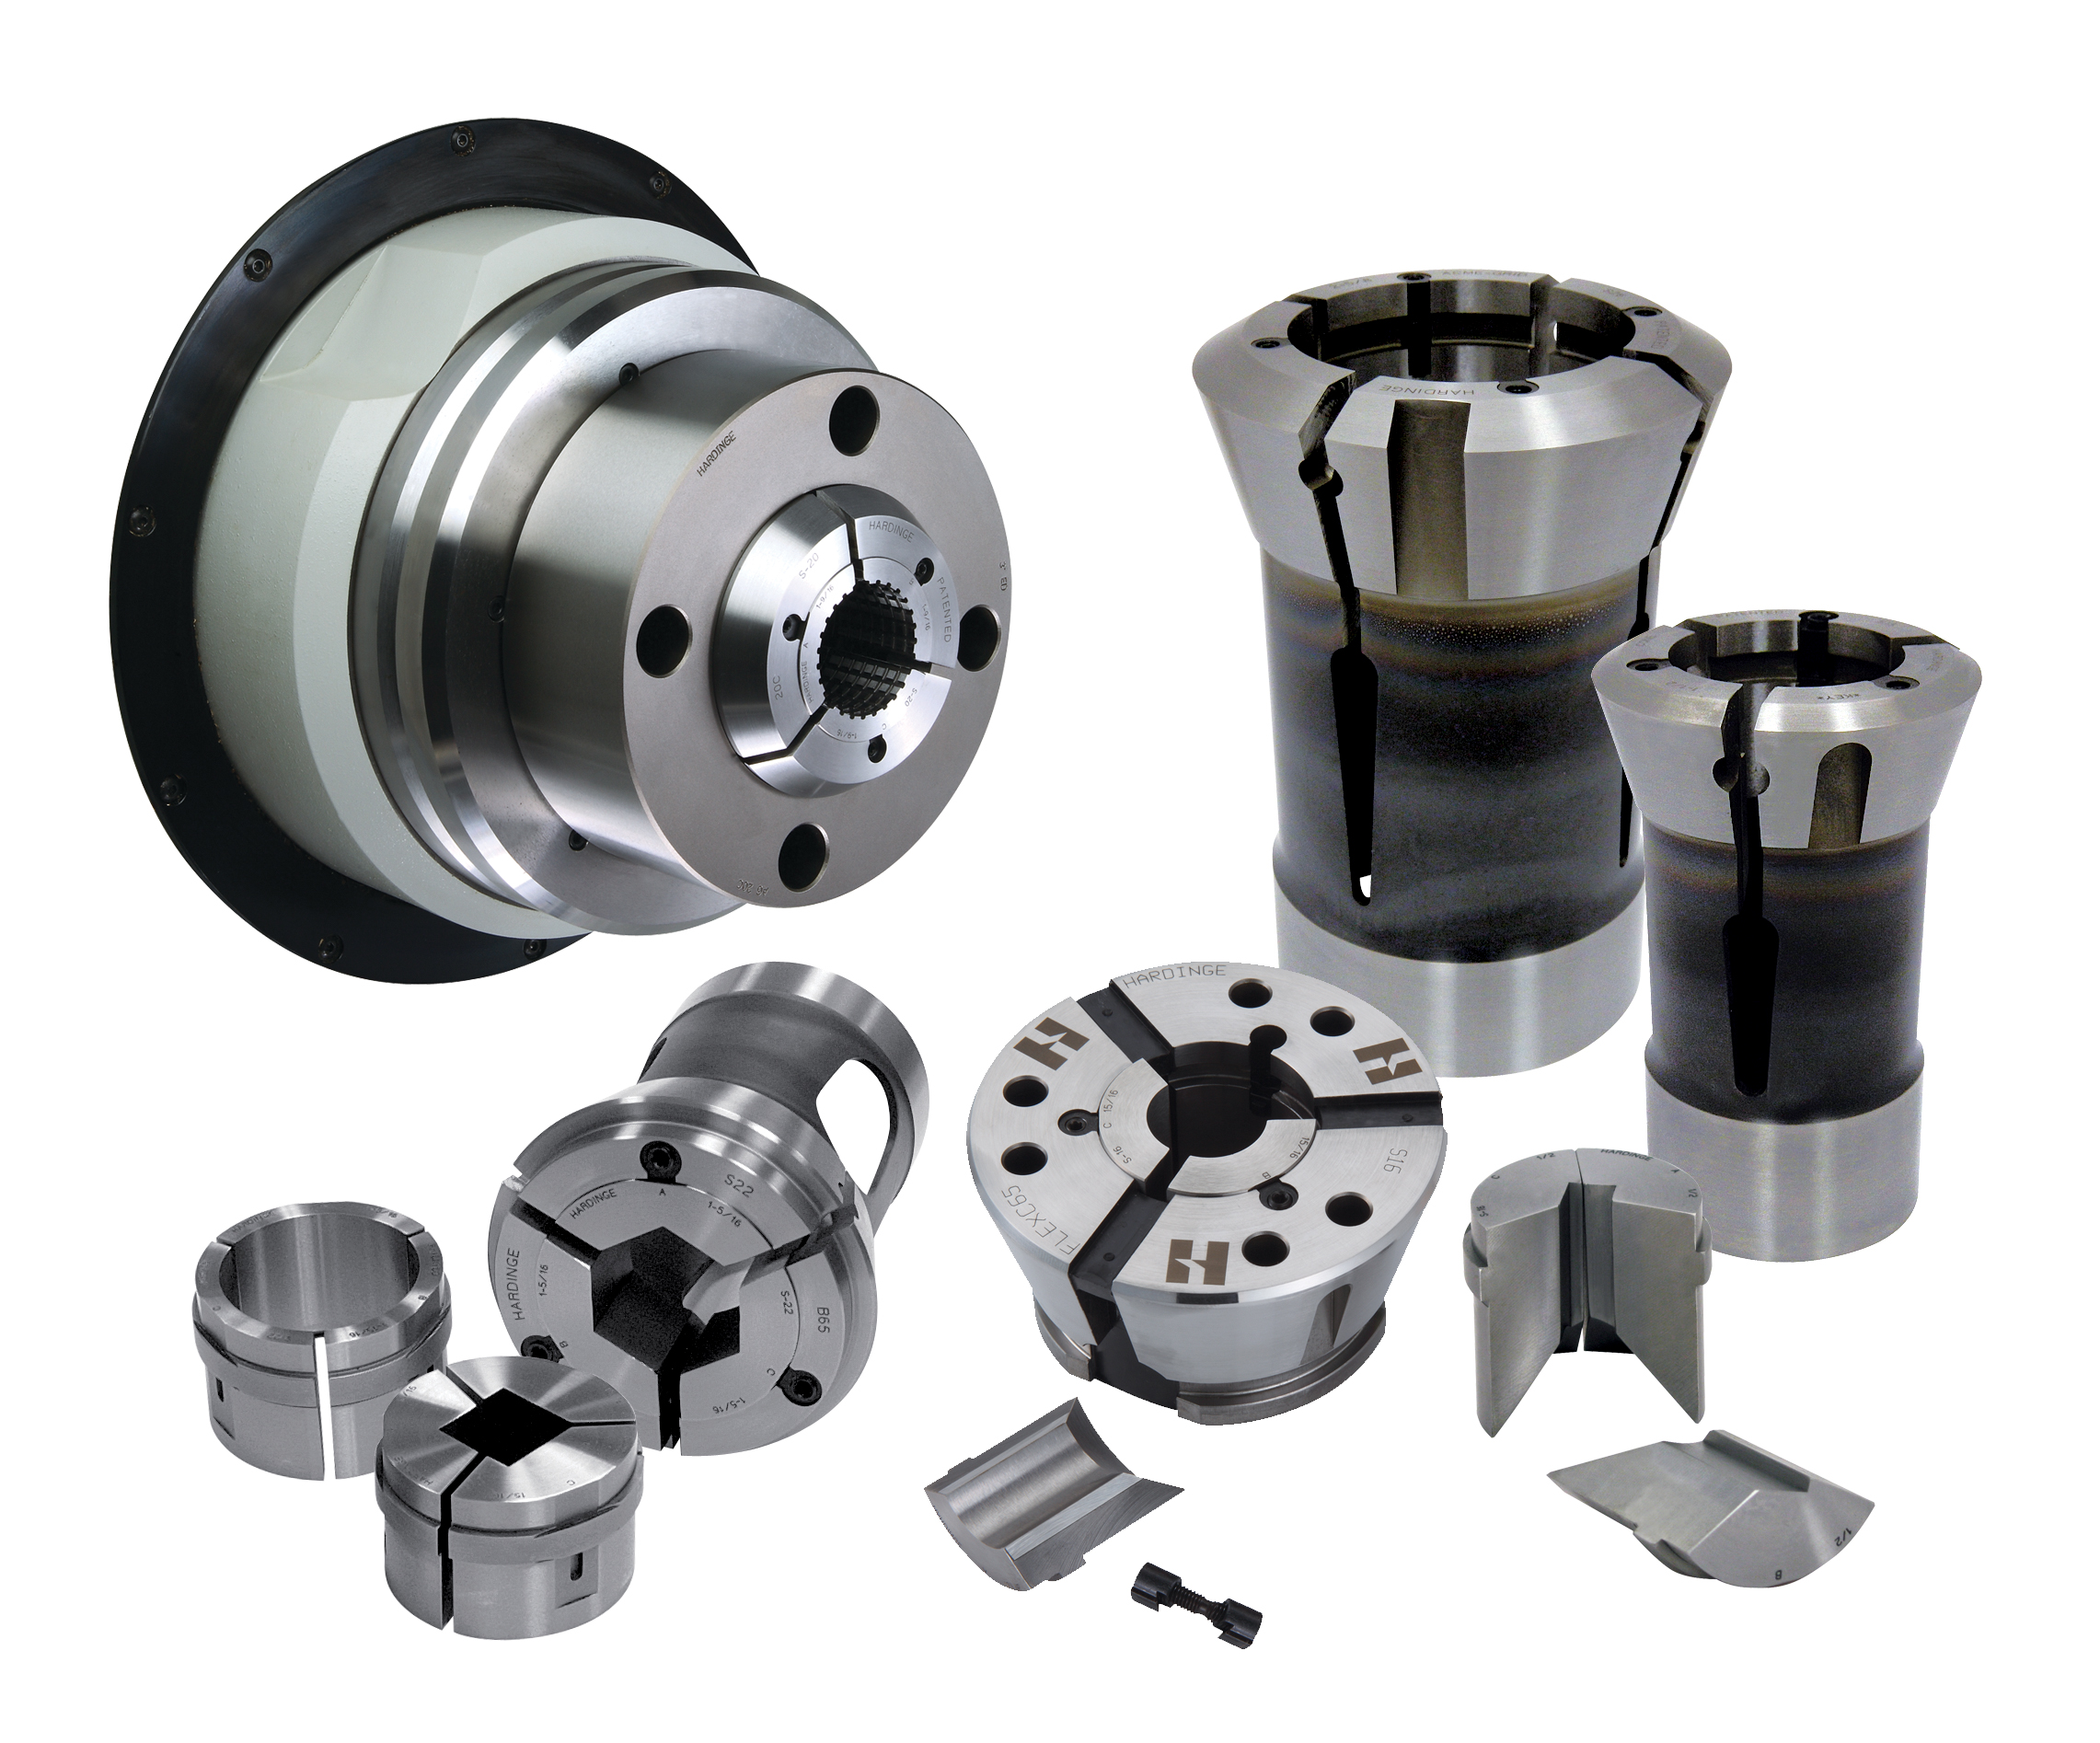 Inside your tool drawer, twelve sets of S-pads take up less space, cost less, and will change over faster than solid collets. The S-pads can be shared between the multi-spindles, the CNC spindles and collet blocks for vertical machining centers and are available in round, hexagon and square with smooth or serrated order holes, and special shapes.(click on image to enlarge it)